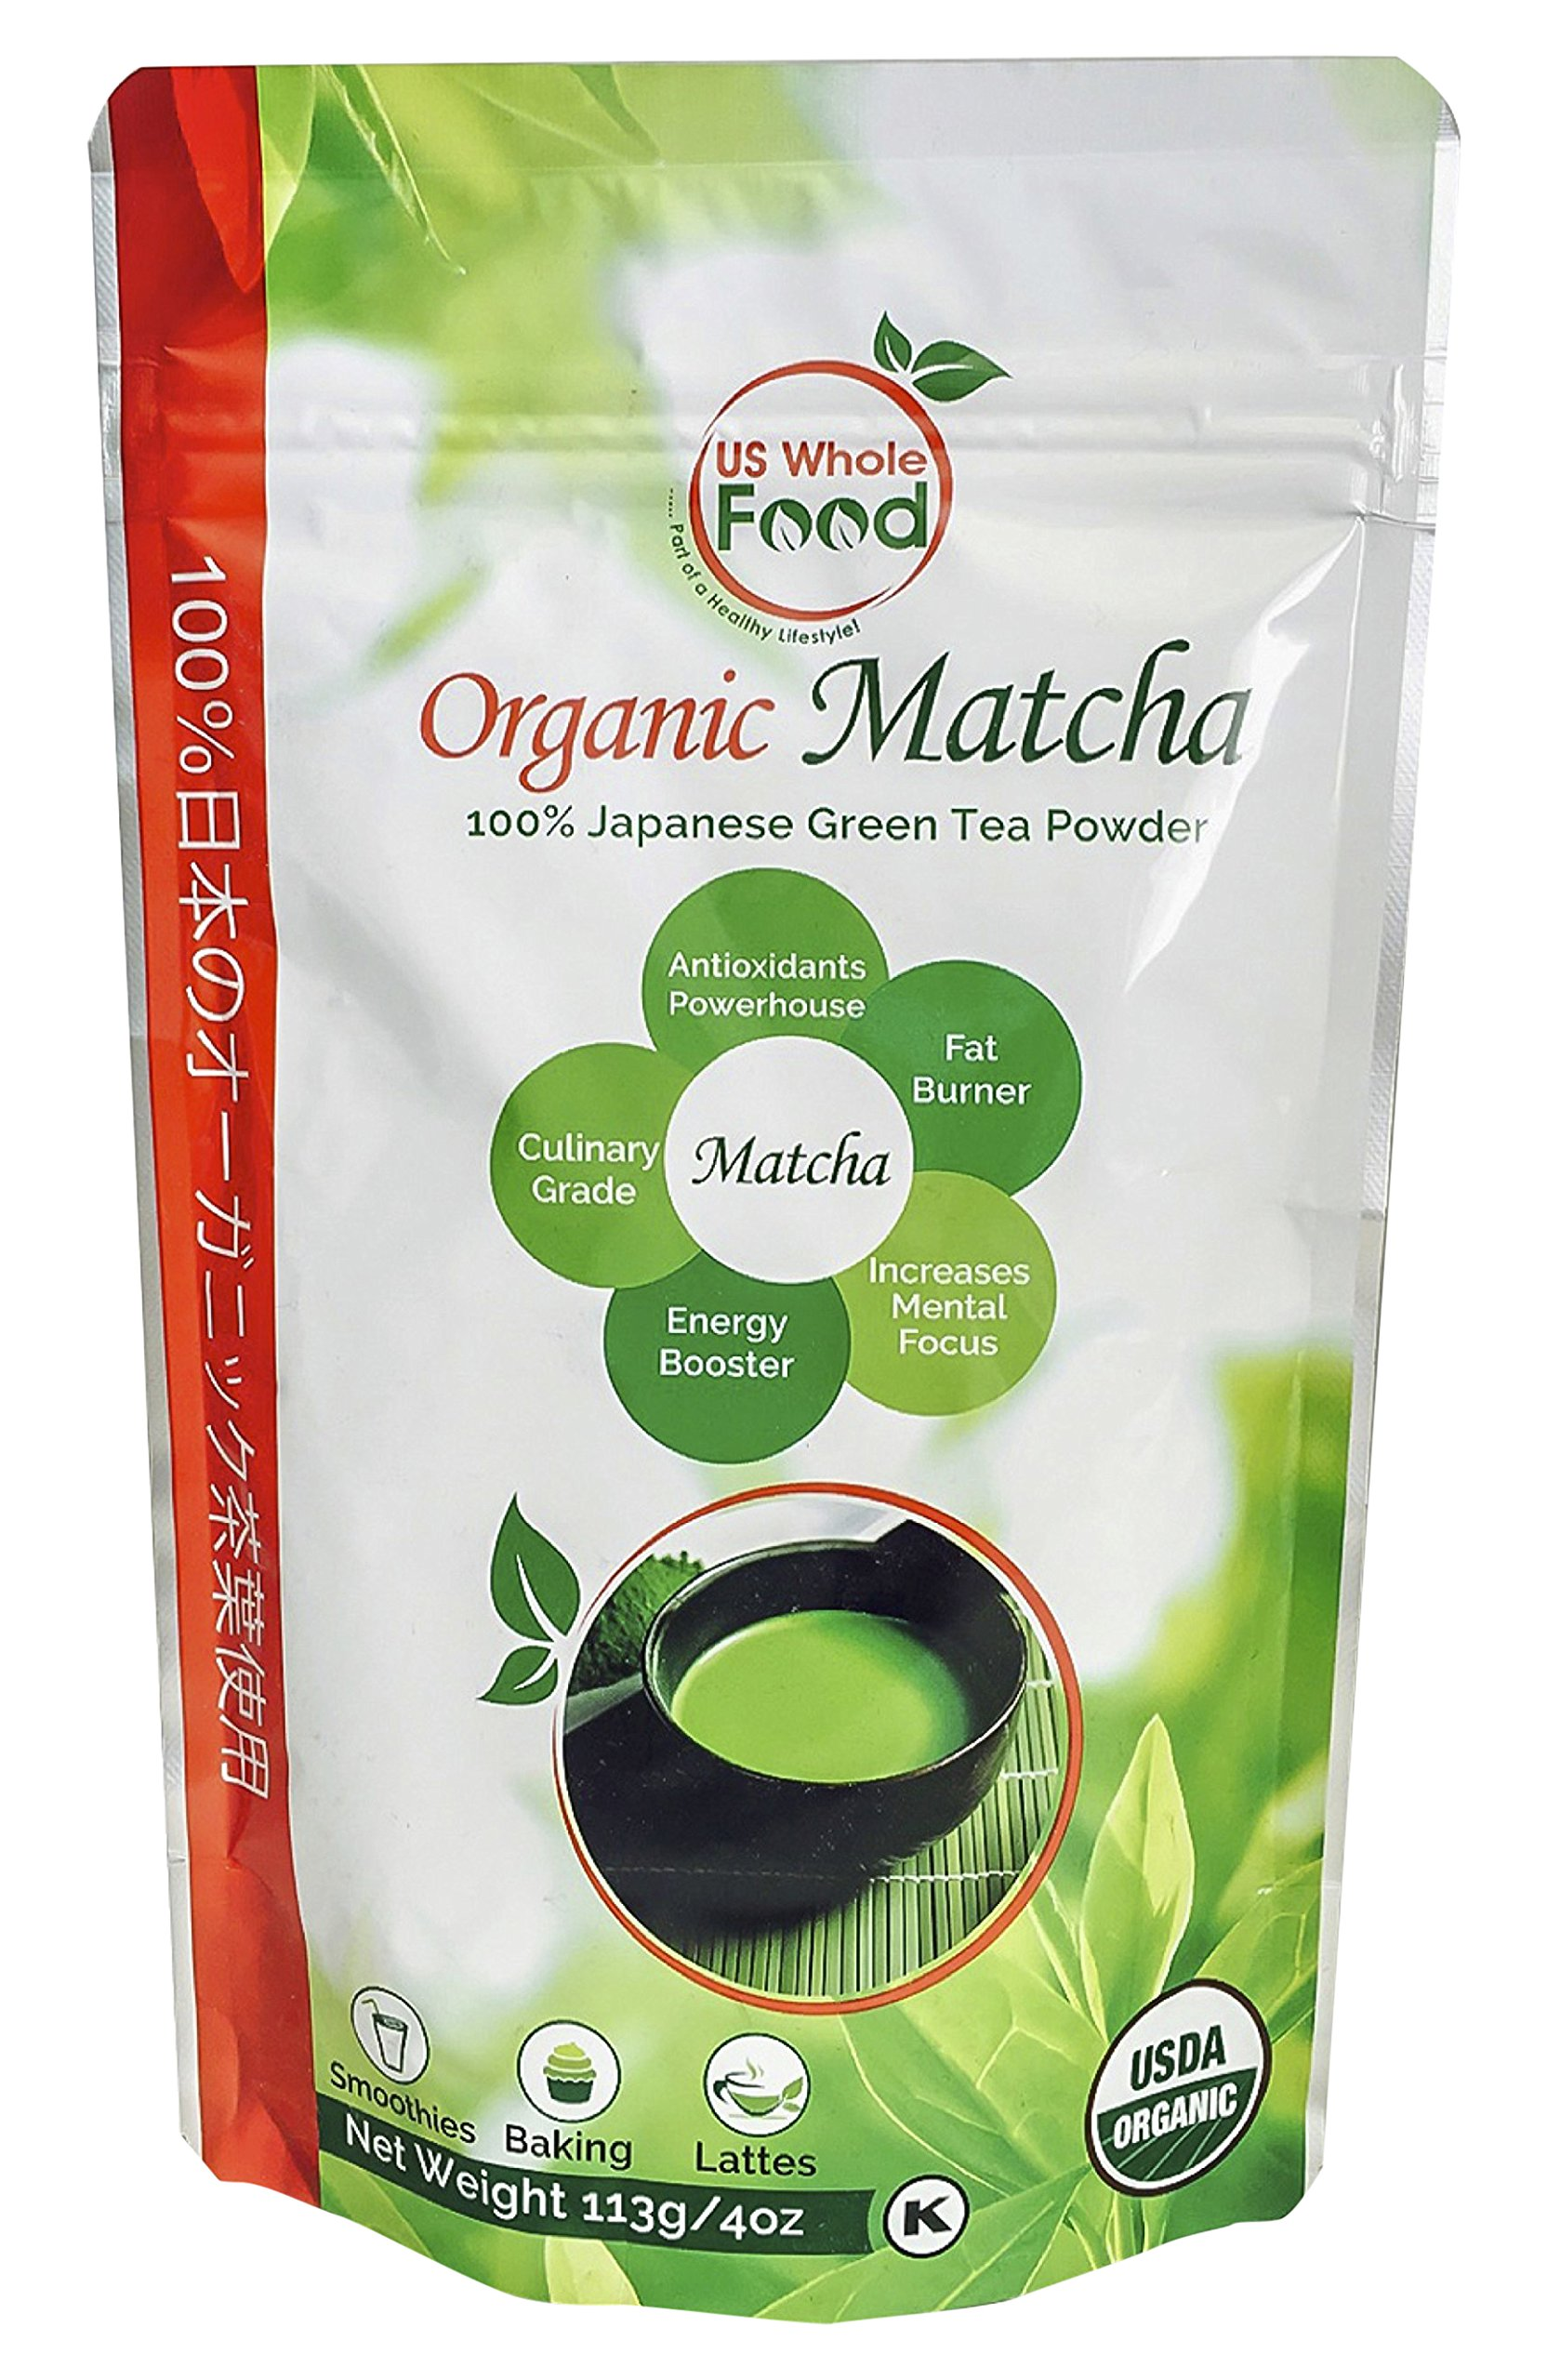 US Whole Food Premium Japanese Matcha Green Tea Powder,4 Ounce,100% USDA Organic by US Whole Food